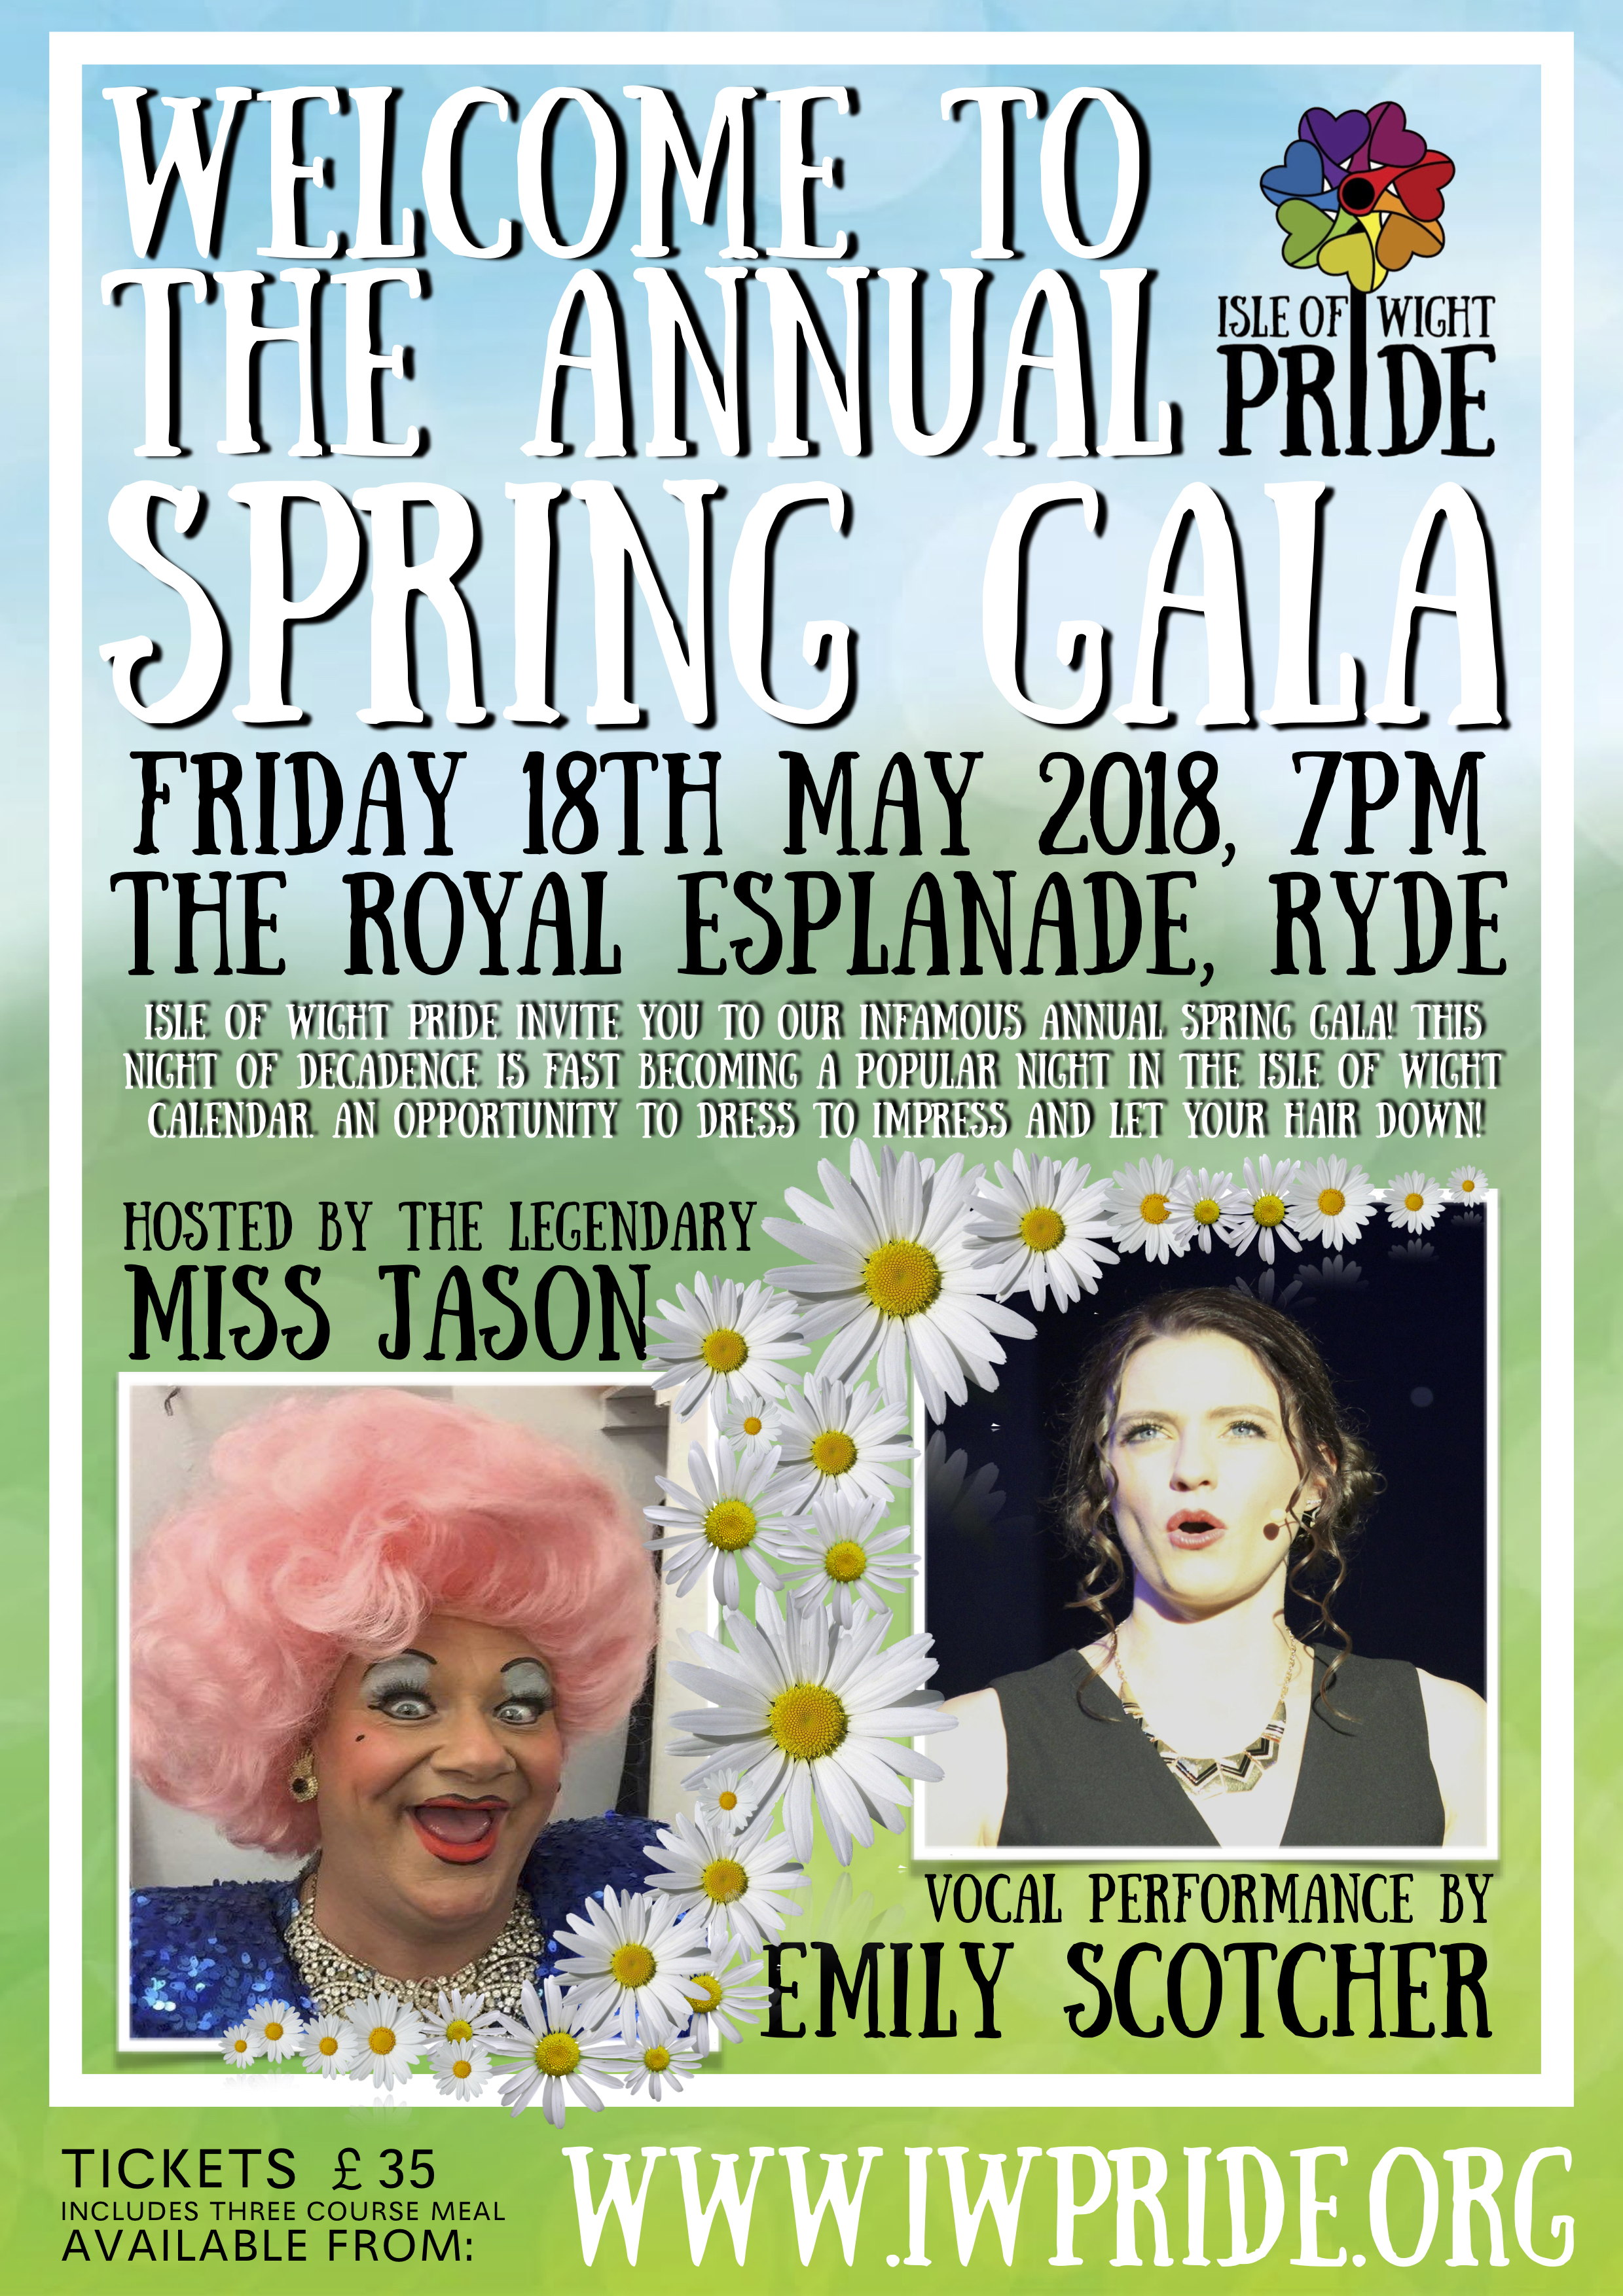 Isle of Wight Pride Spring Gala – Tickets now available!